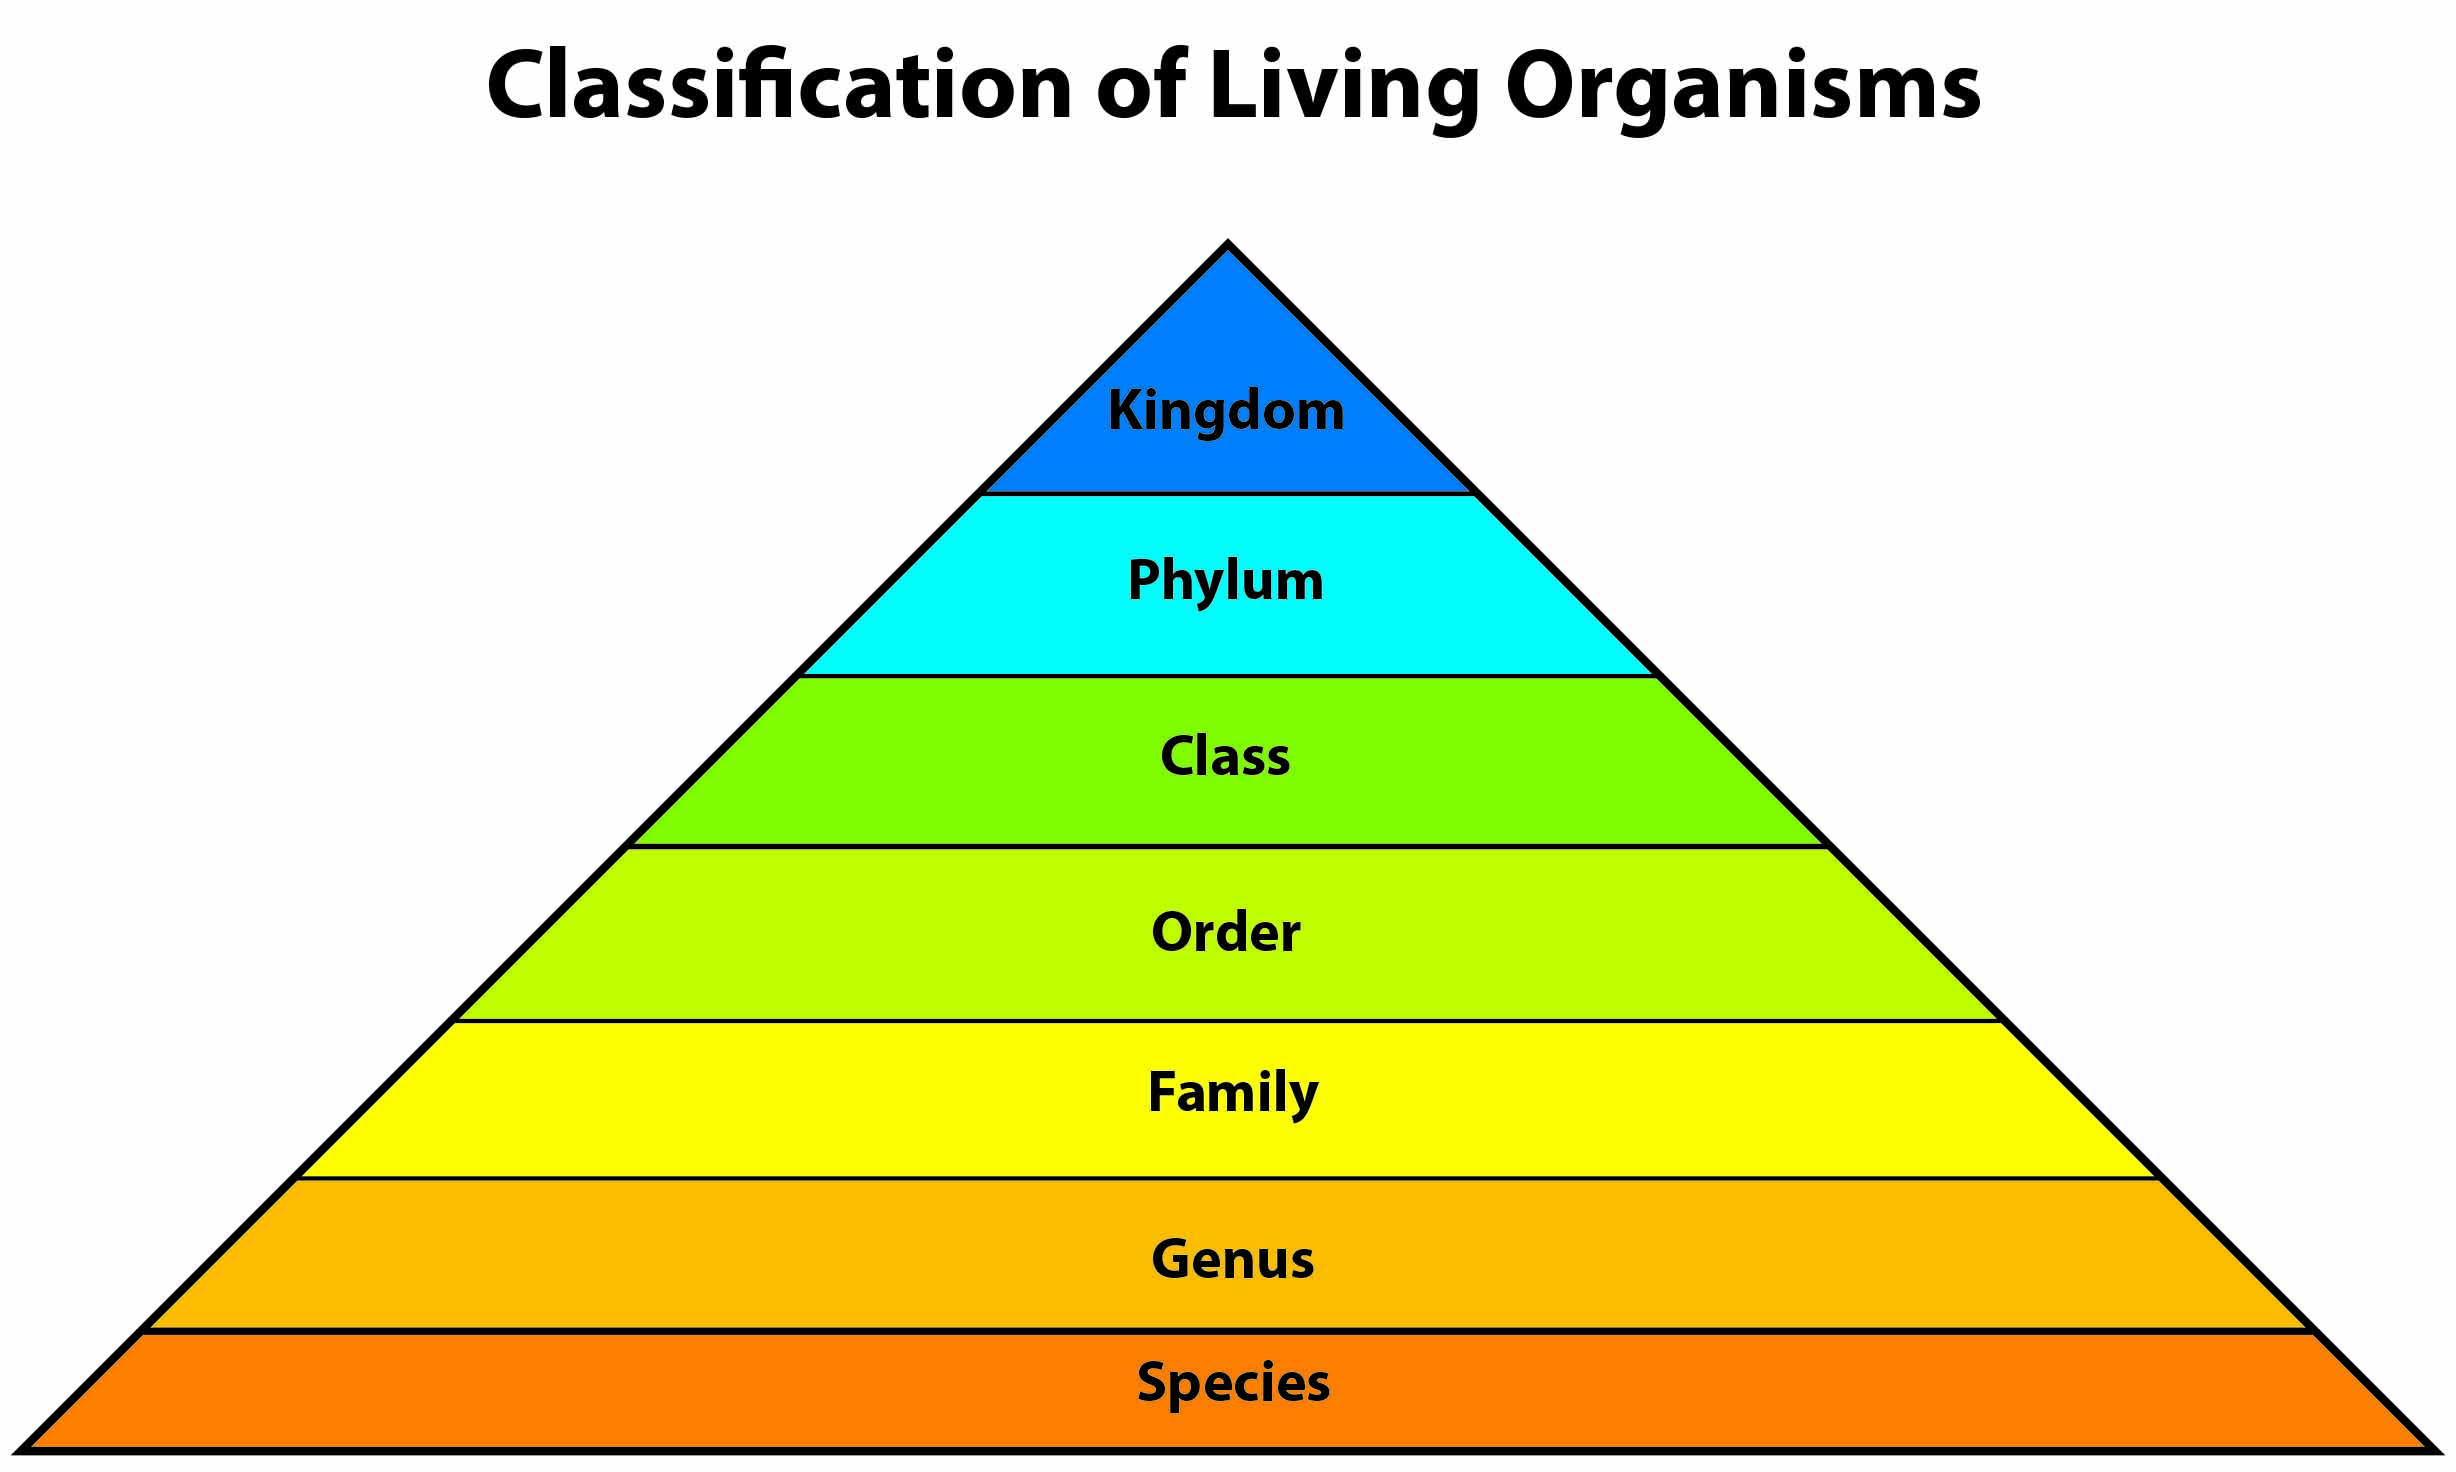 Classification (درجہ بندی) of Living Organisms – Playz All